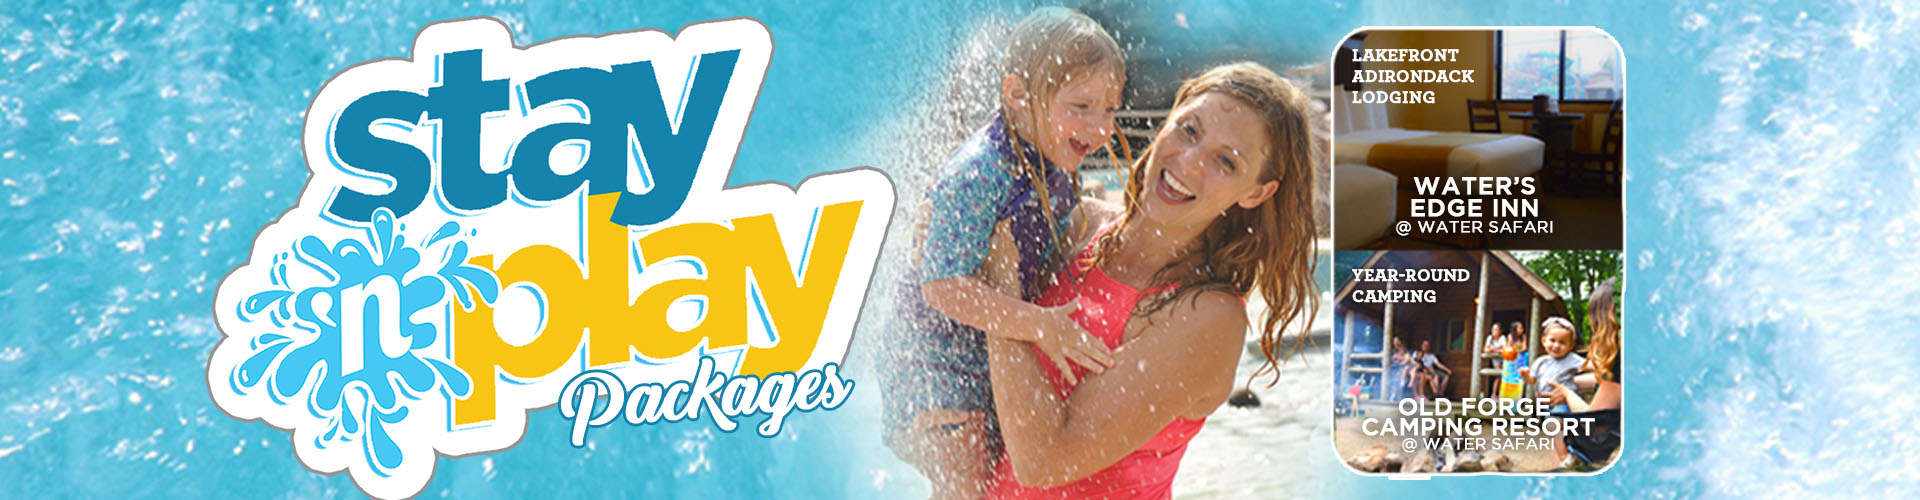 A woman and her daughter smiling and running under sprinklers, to the left of her is the stay 'n play packages logo, and to the right of the mom and daughter is a picture of a hotel room with lakefront Adirondack lodging, water's edge inn written on it and a picture of a family having fun outside of their cabin with year round camping, old forge camping resort written on it